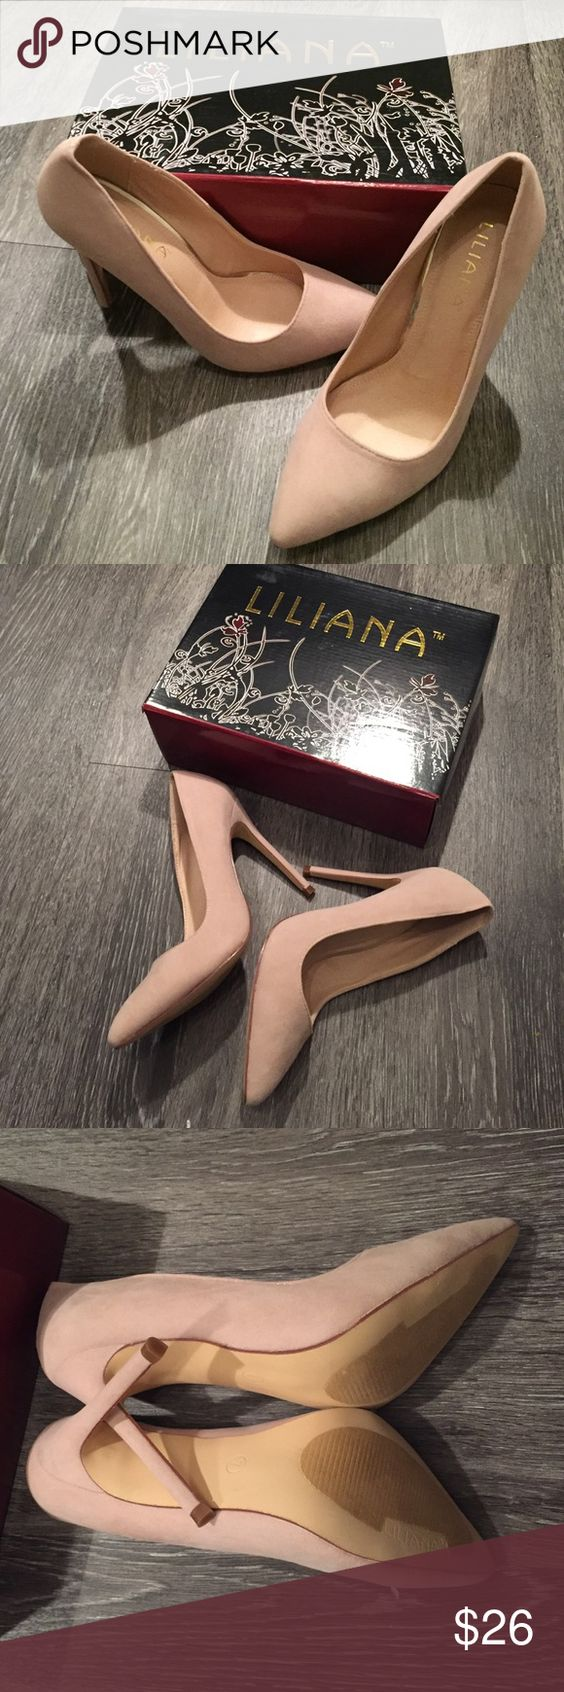 Nude pumps New with box Shoes